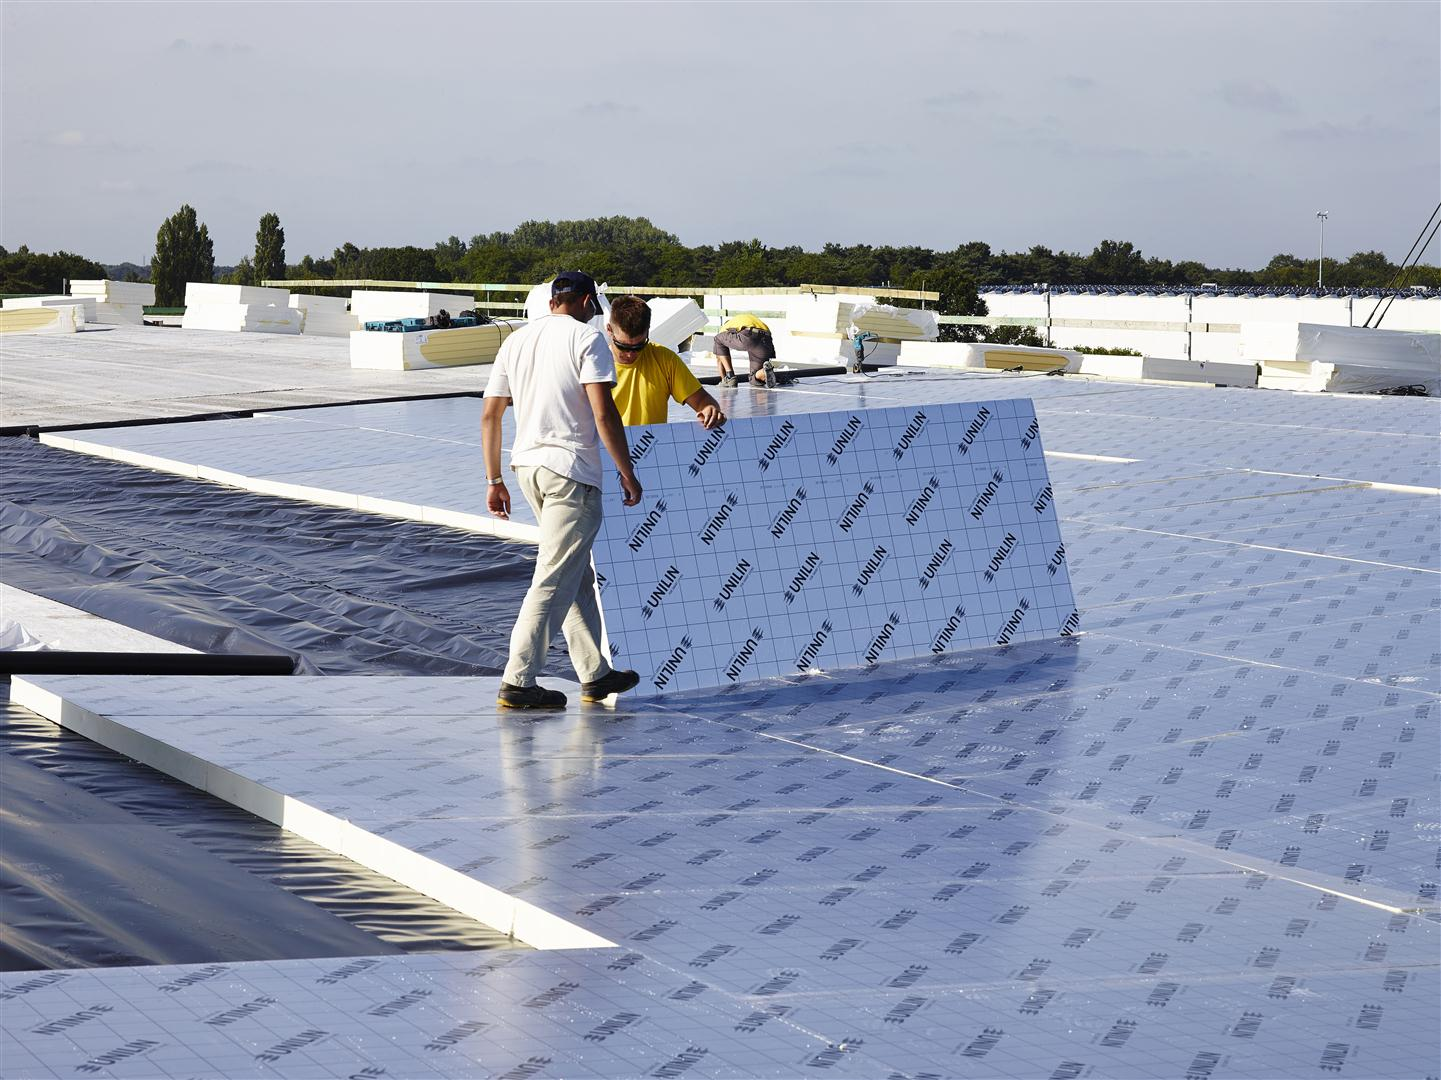 http://authoring.unilininsulation.emea.int.grp/Assets/FOTO%20SITE%20FRANKRIJK/utherm%20homepage%20highlight.jpg